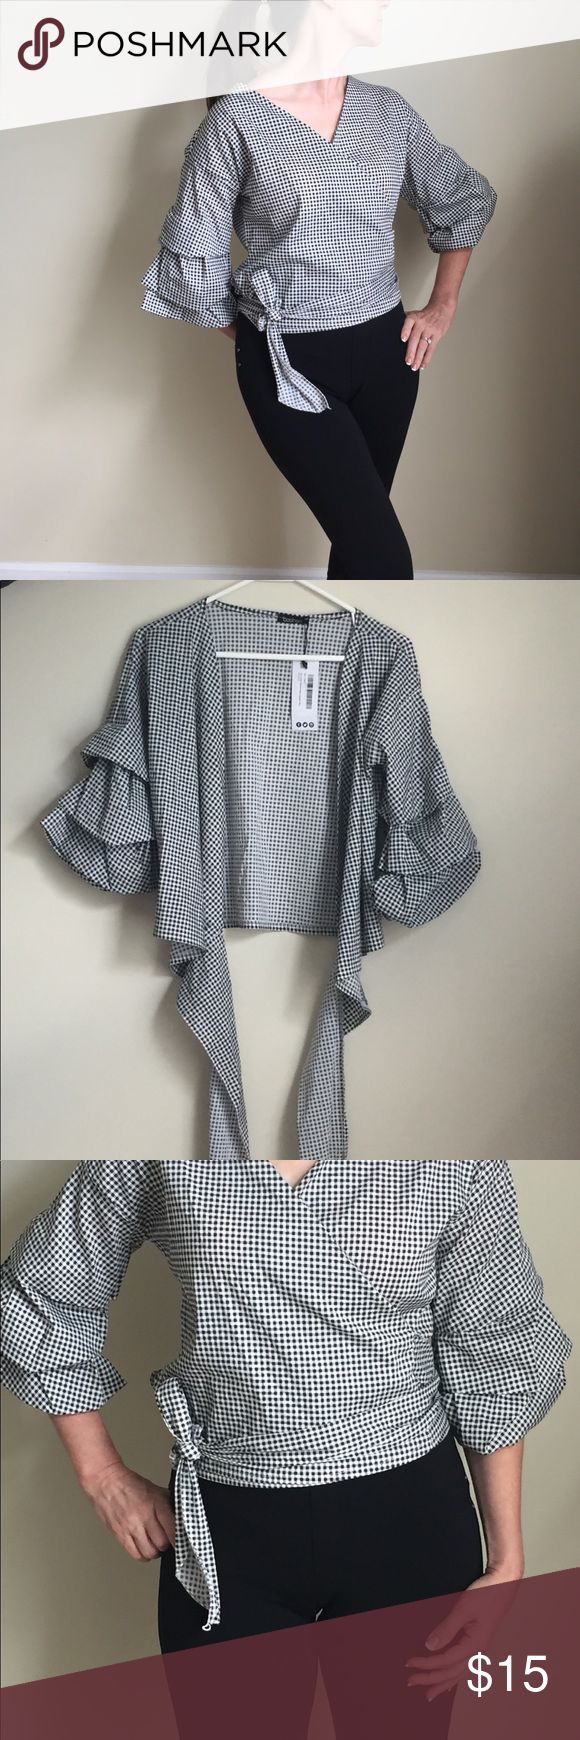 """Ruffle statement sleeve blouse Classy blouse. Never worn. Original tags. Black and white gingham/checkered. 70% Cotton, 27% nylon, 3% elastane. Model is 5'4"""", 125 lbs. Tops Blouses"""